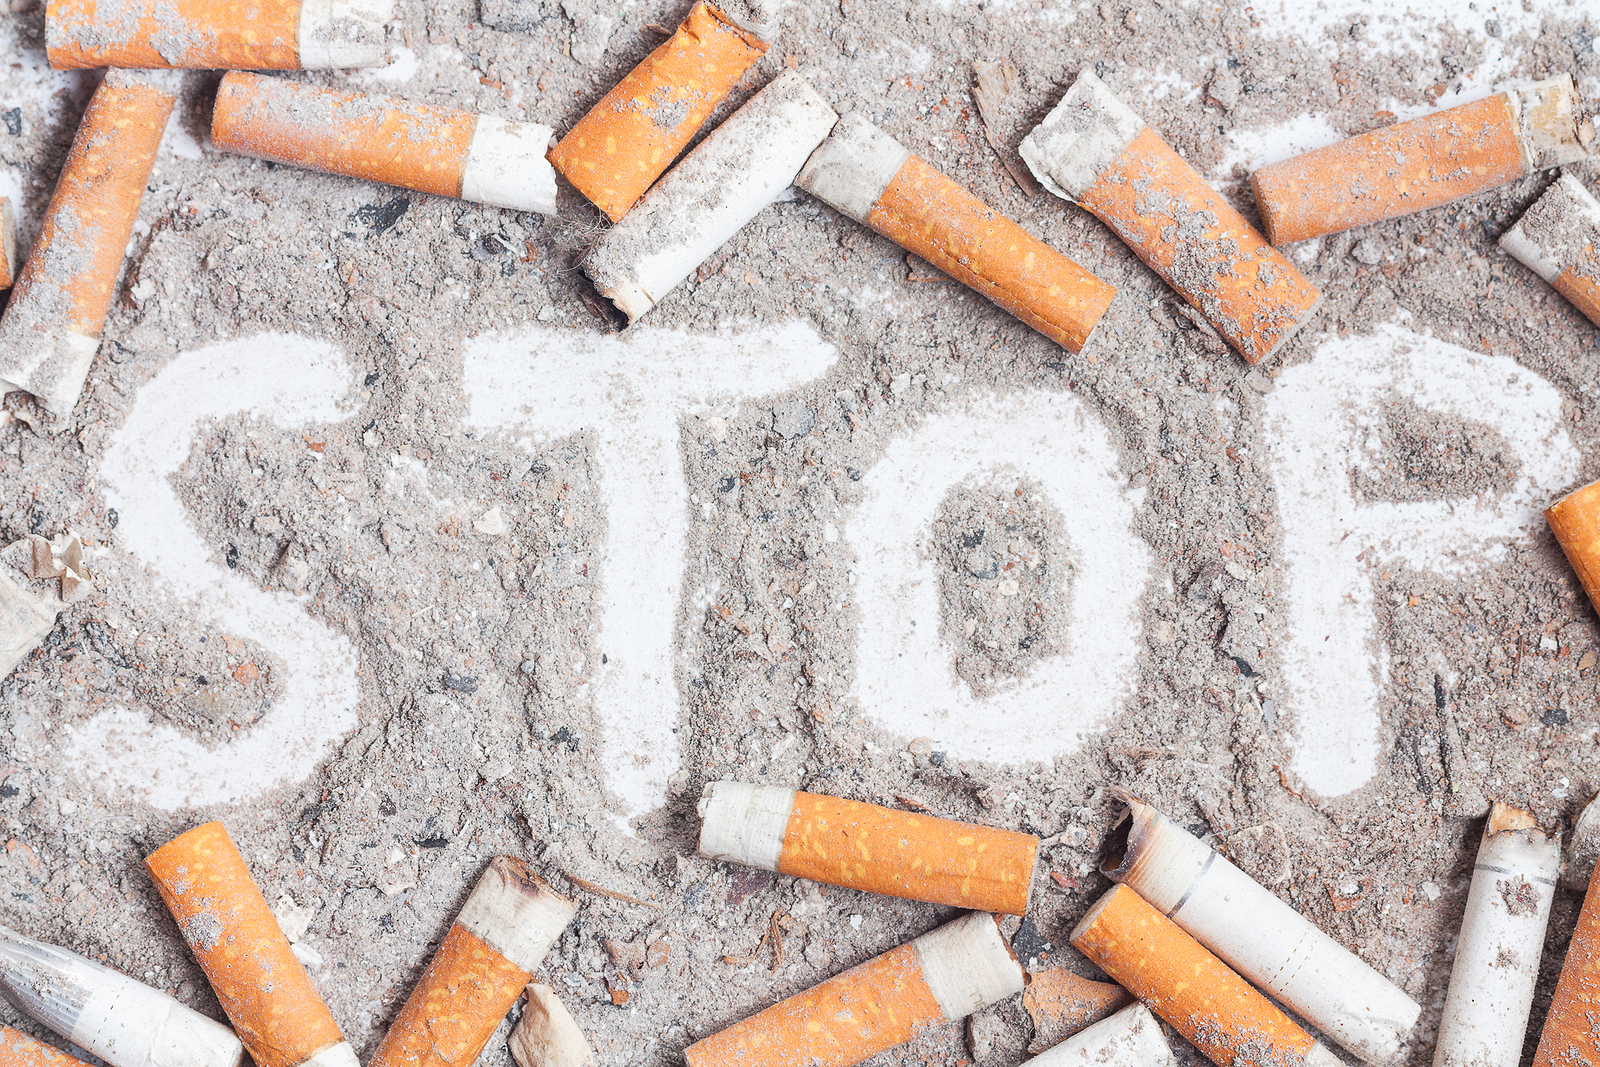 Cigarette butts and ashes. Quit smoking now